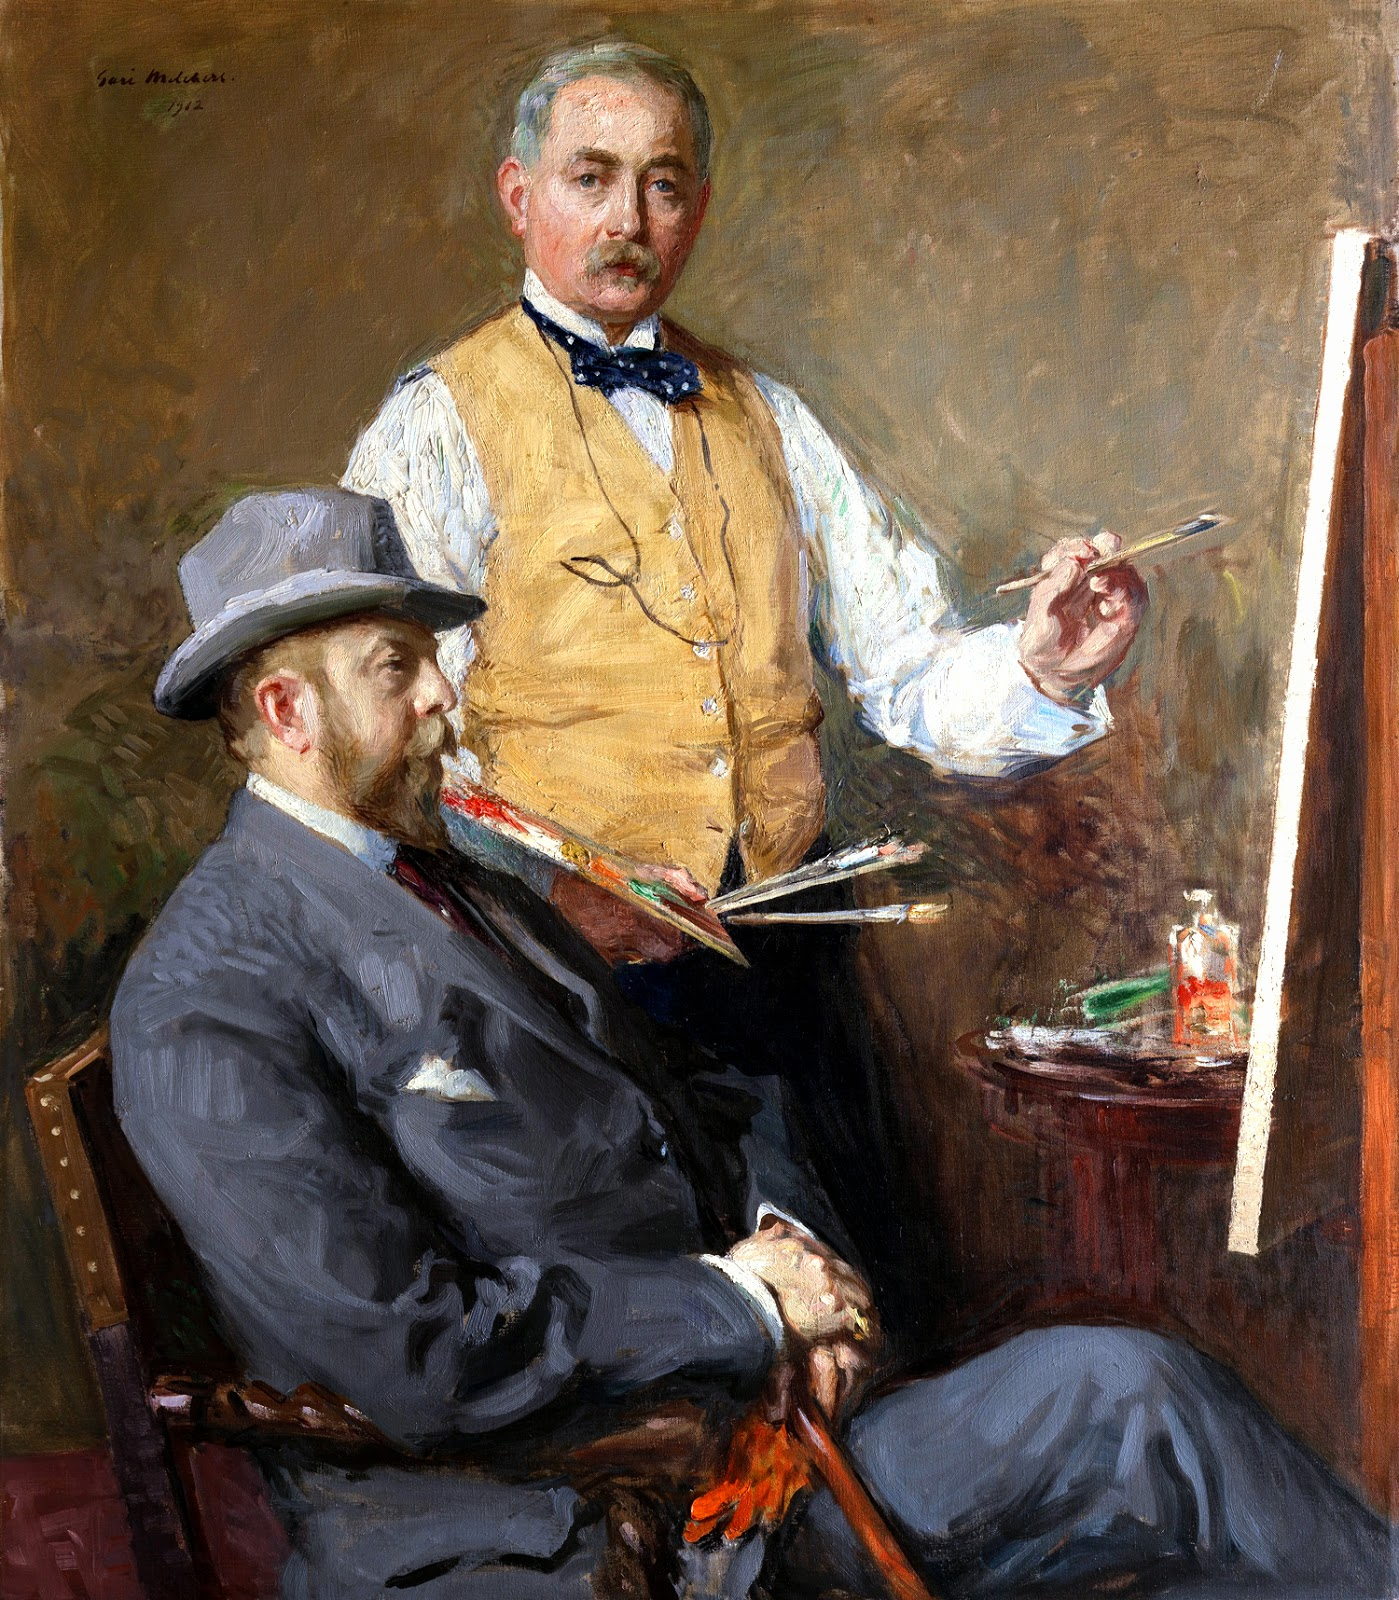 Gari Melchers, Self Portrait, Portrait of Painters